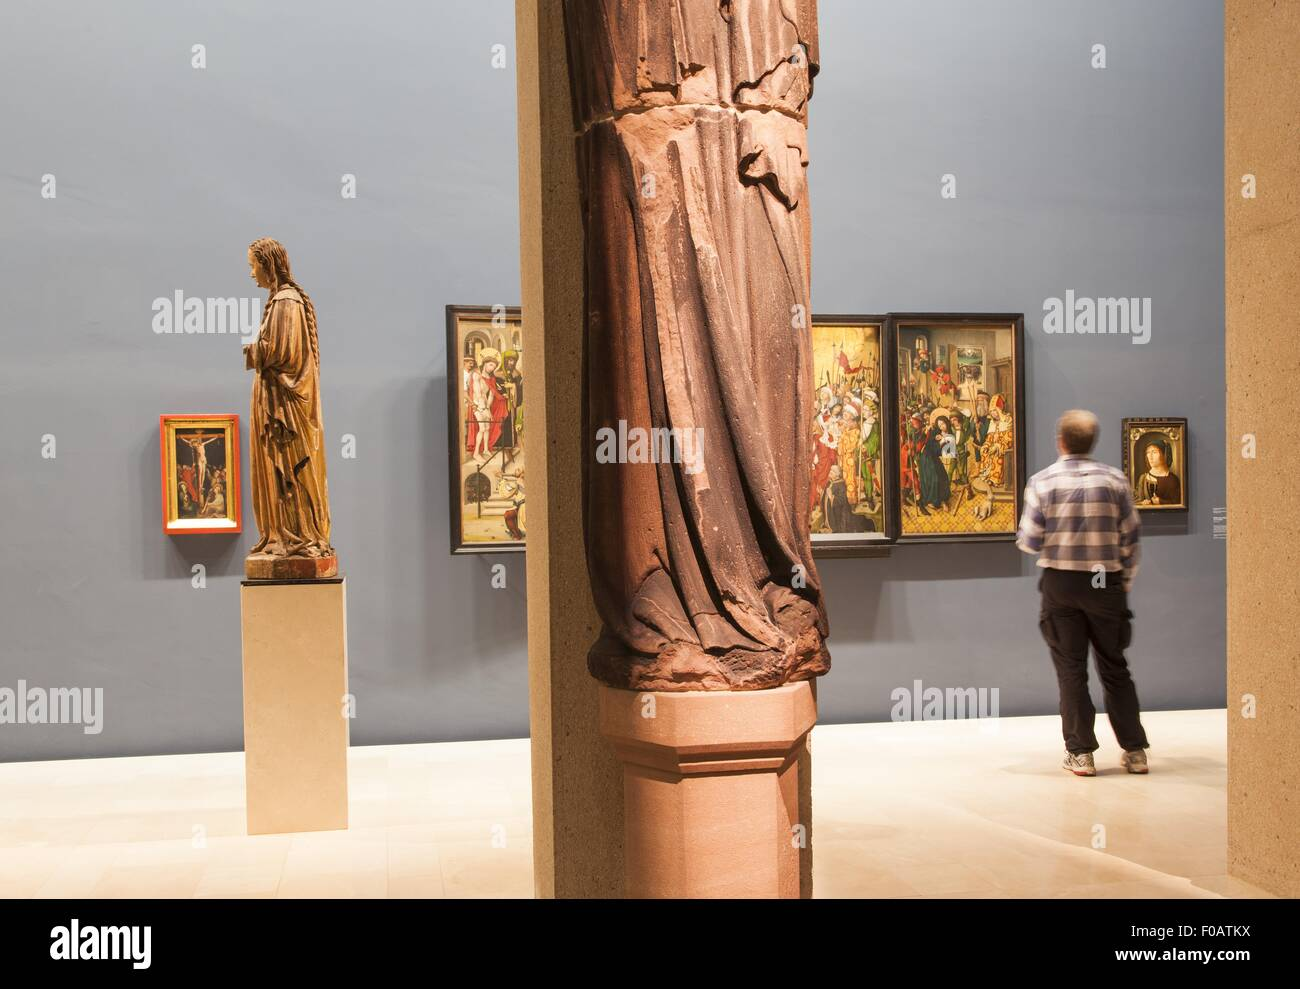 View of passion Altar in Sculpture hall, Augustiner Museum, Freiburg, Germany - Stock Image